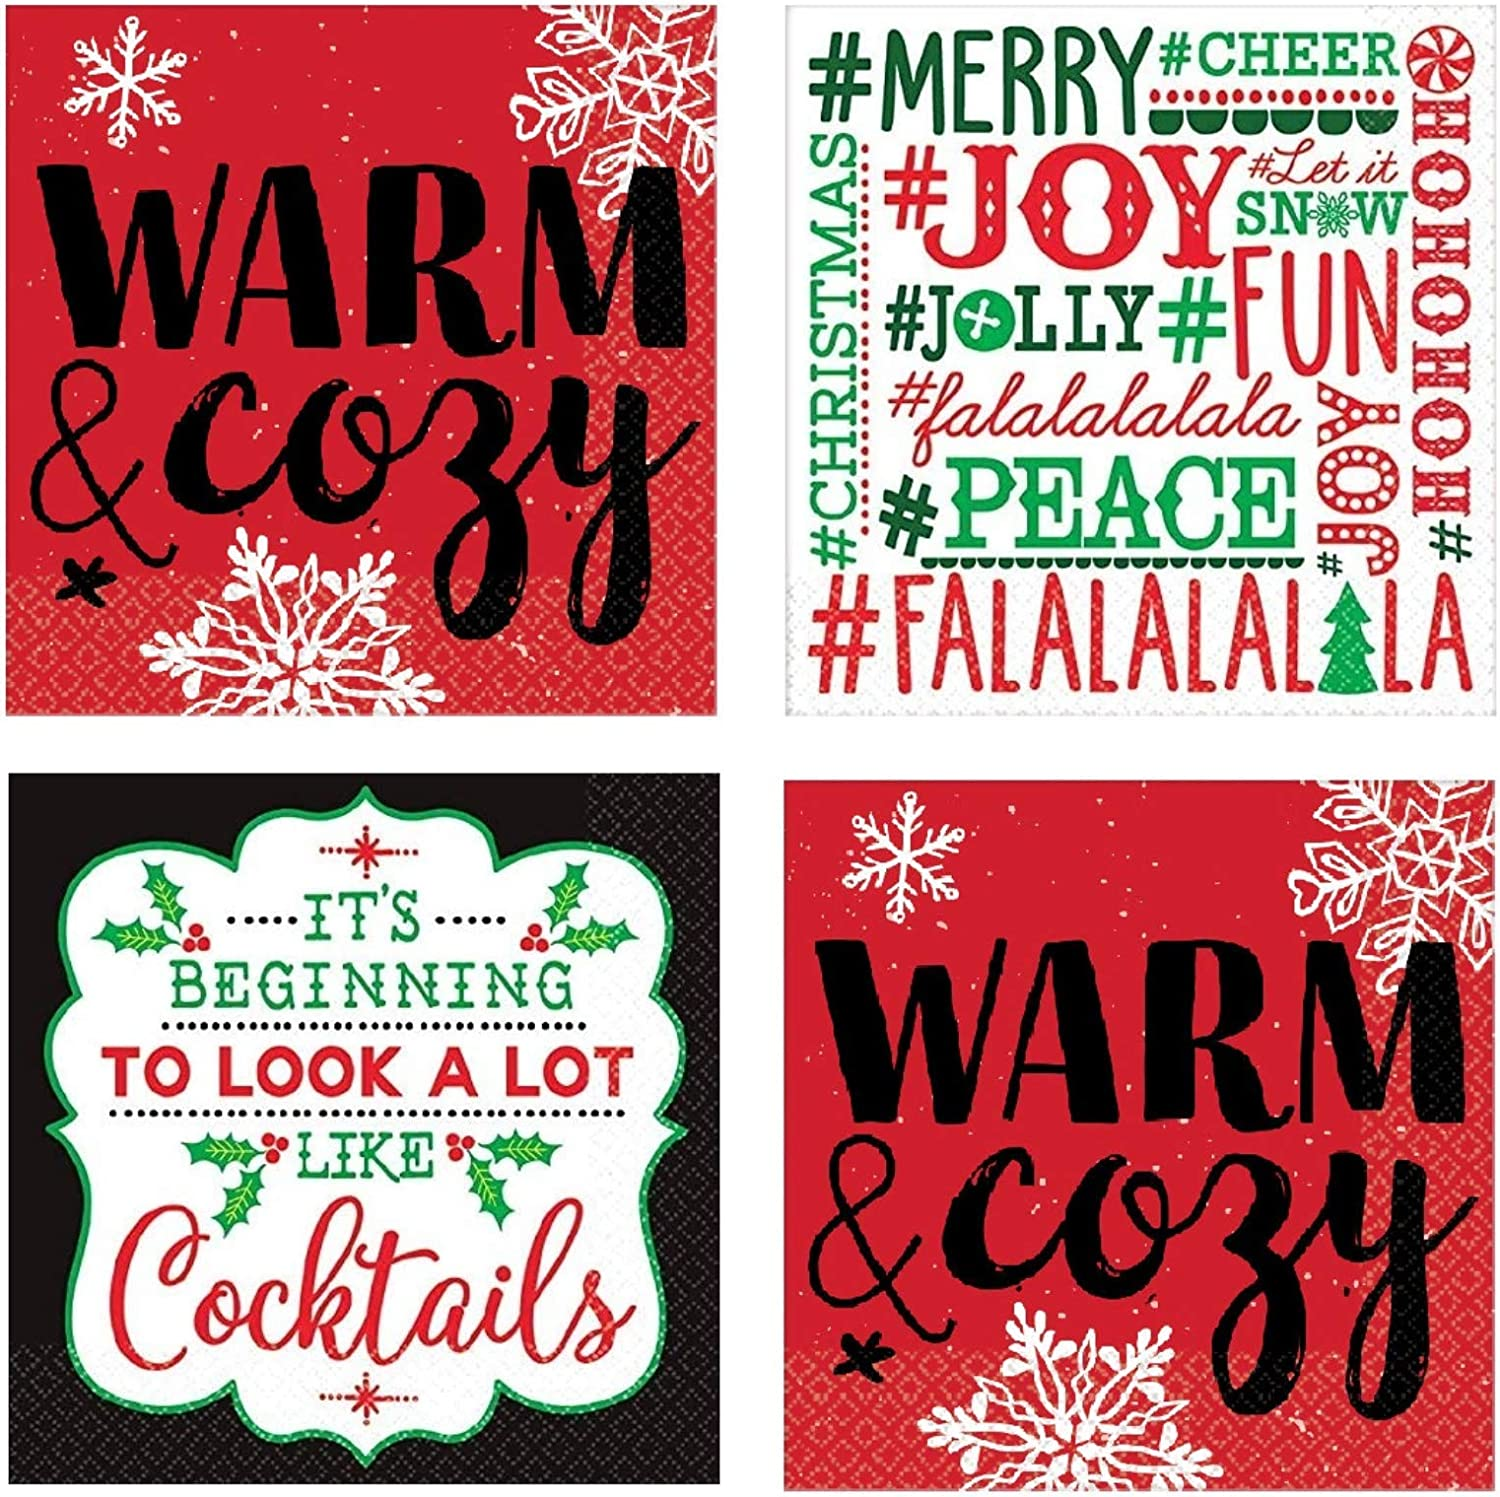 Funny Christmas Cocktail Napkins 48 Count Set Phrases Assorted Variety Pack Beverage Paper Napkins Snarky Sarcastic Fun